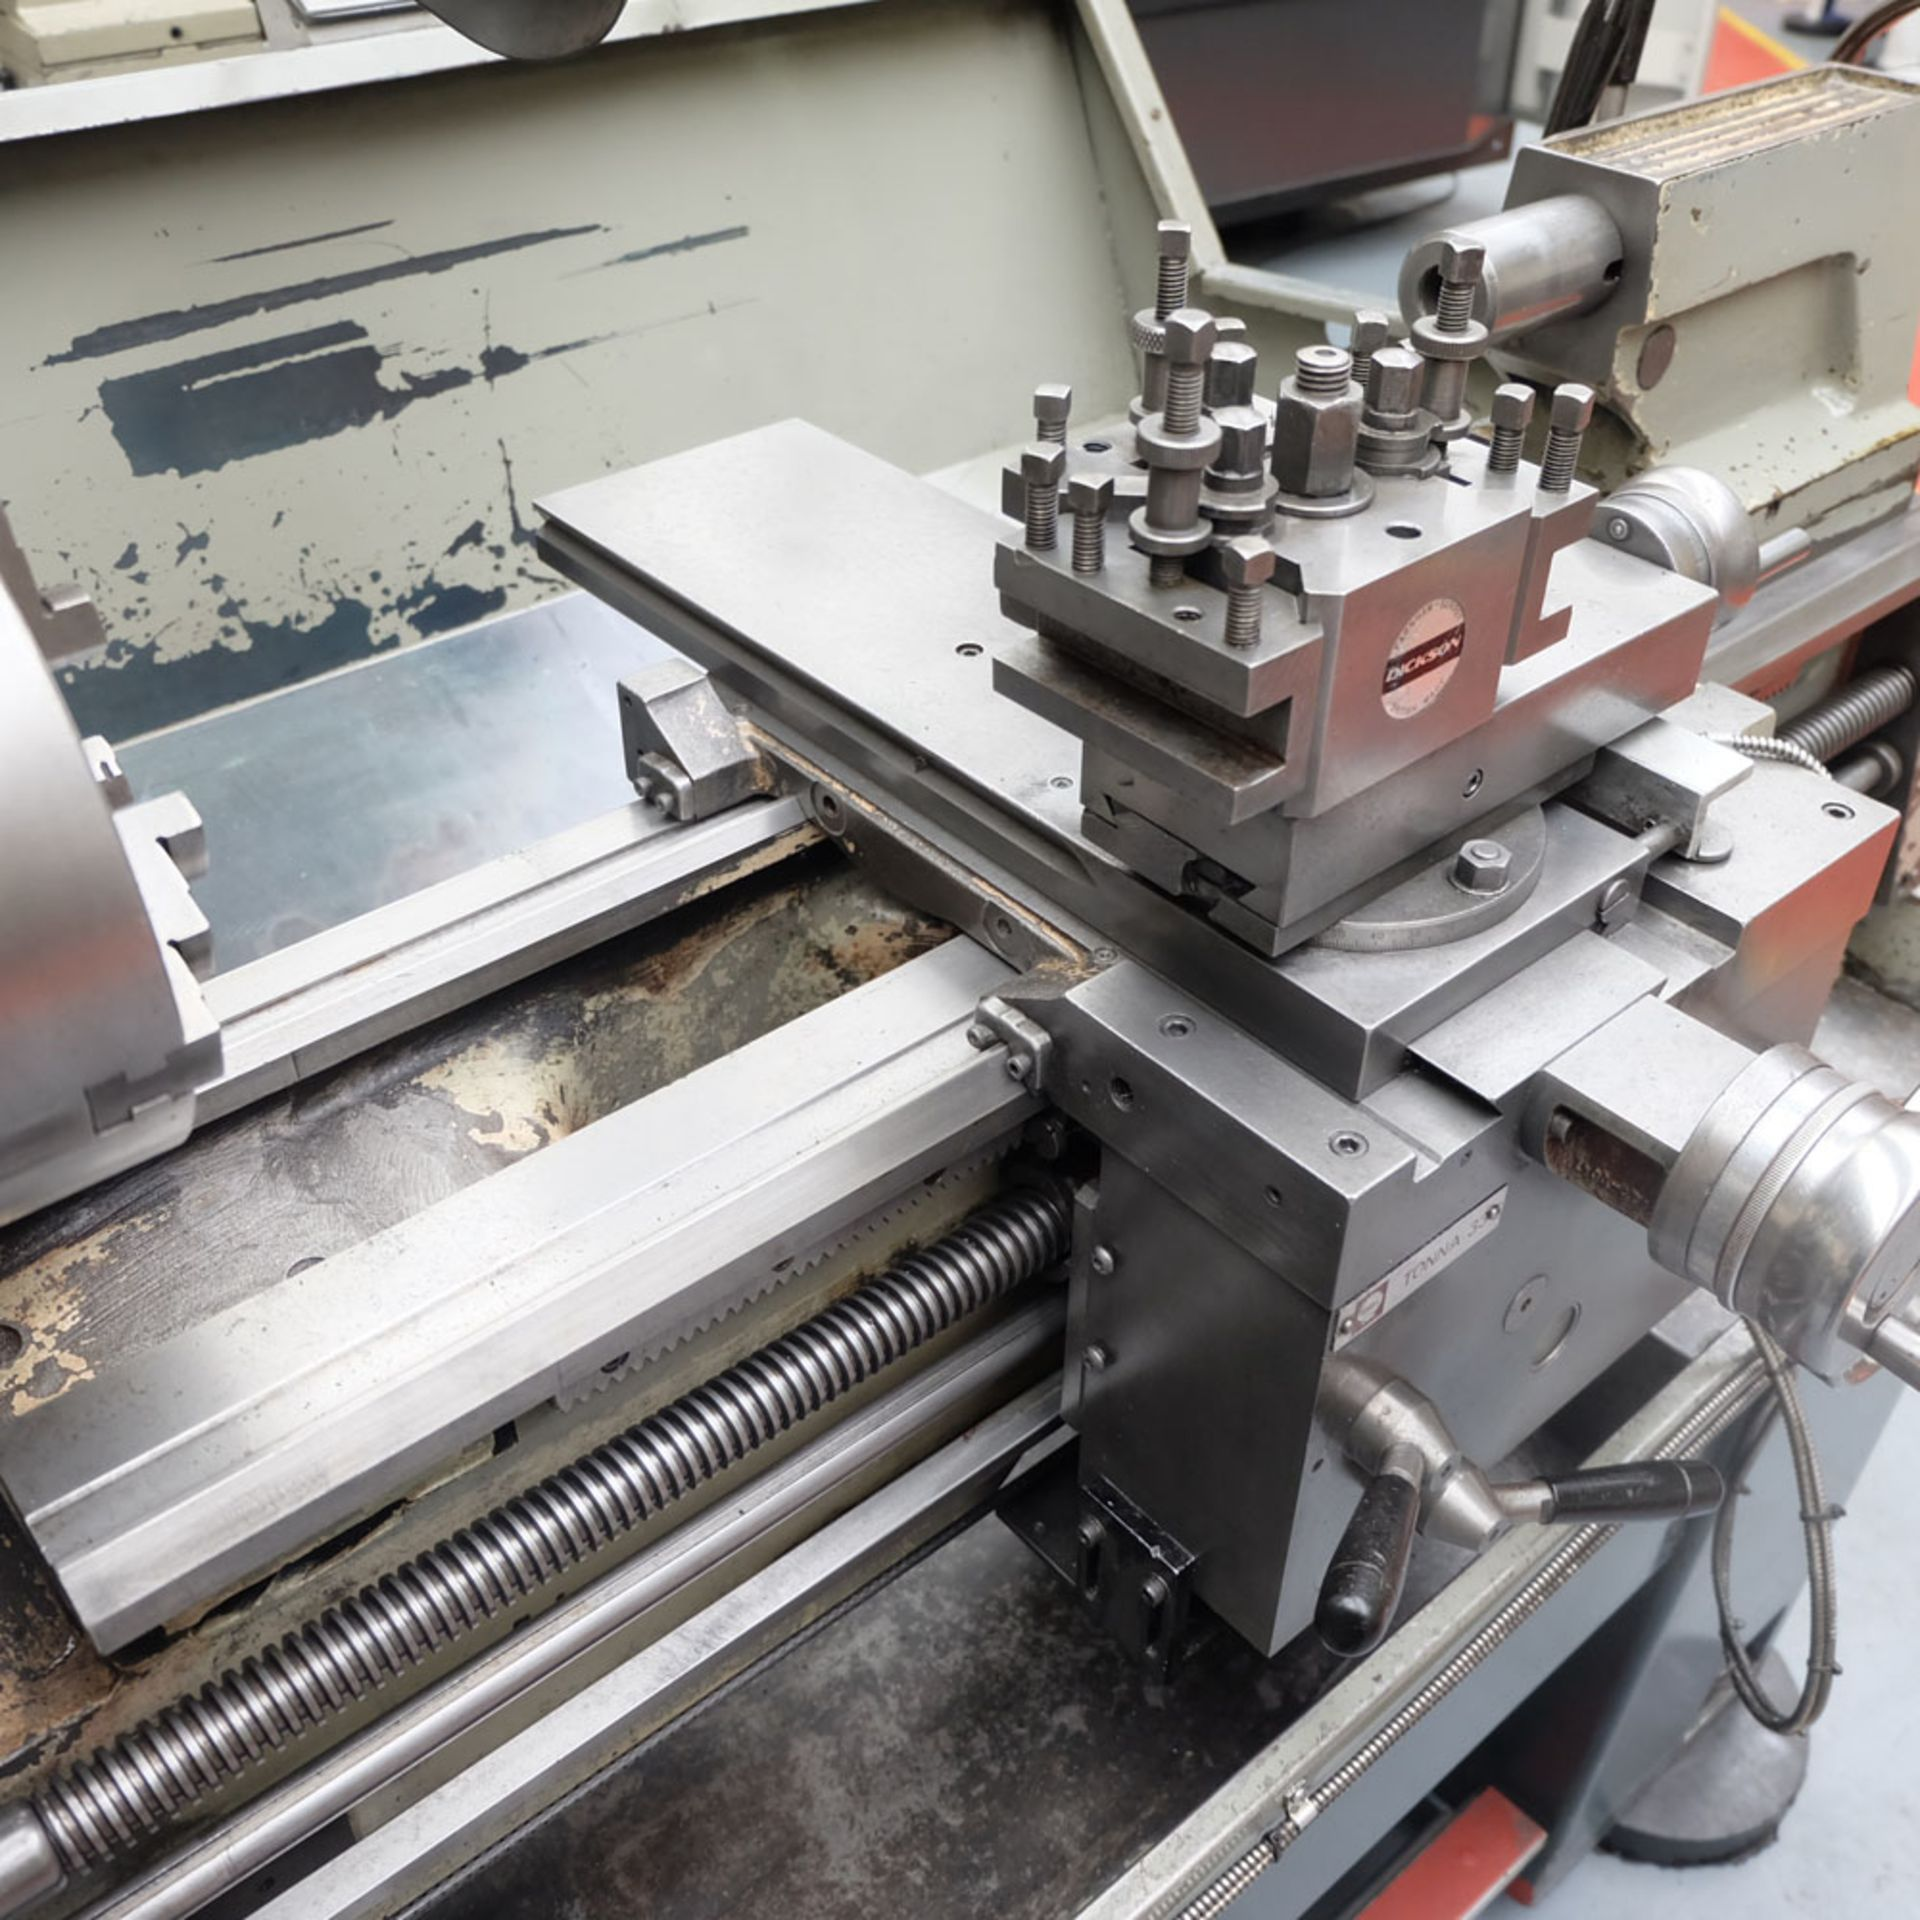 Colchester Student 1800 Gap Bed Centre Lathe. - Image 6 of 8